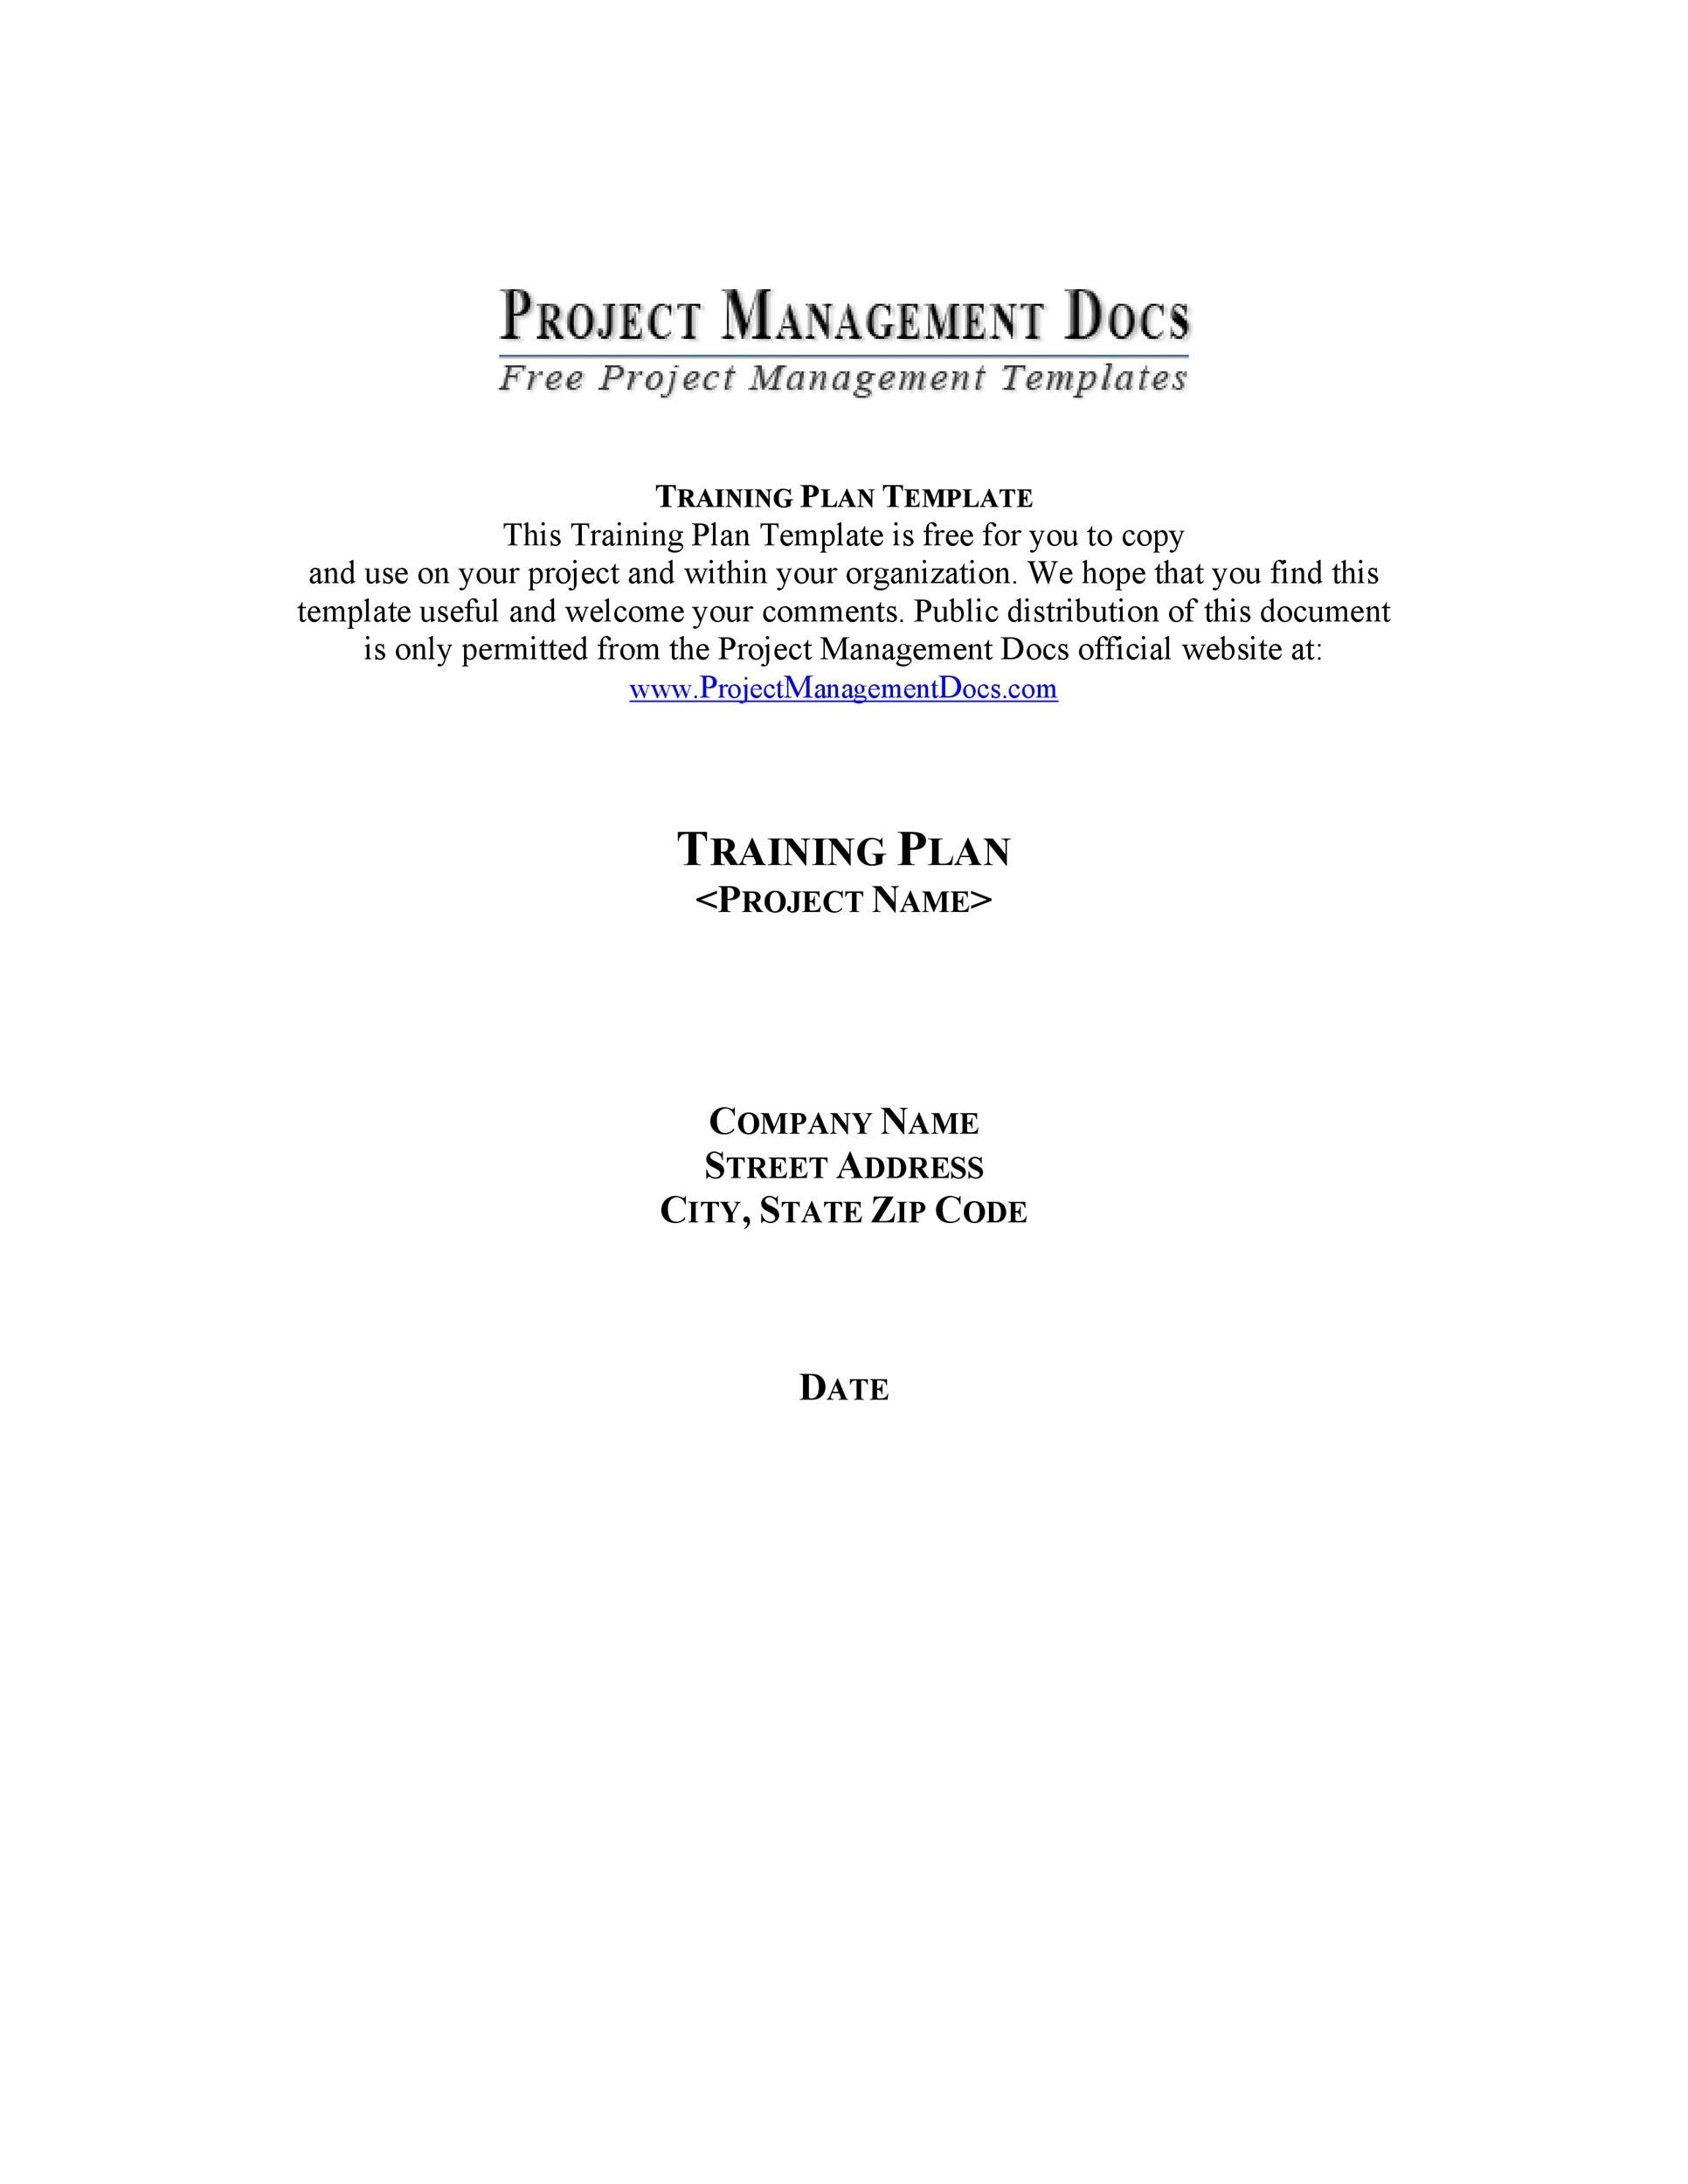 Training Manual - 40+ Free Templates  Examples in MS Word - free training manual templates